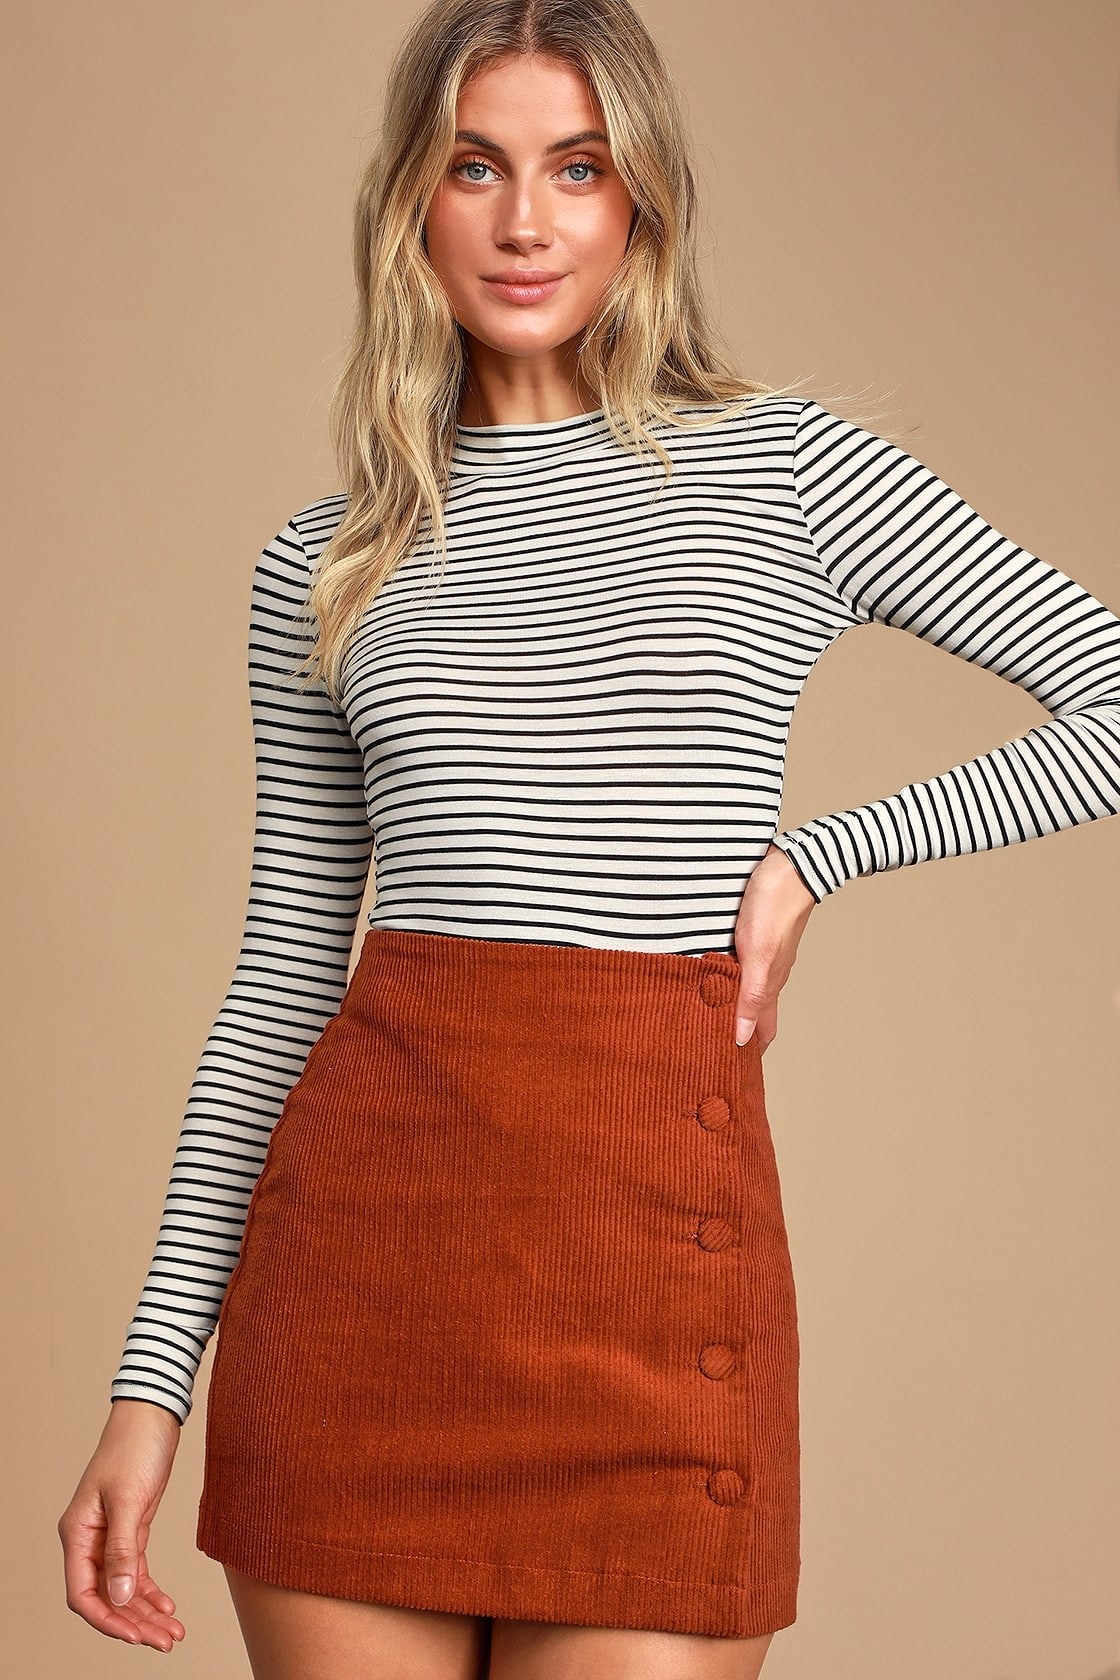 model wearing a long sleeve top with black and white stripes